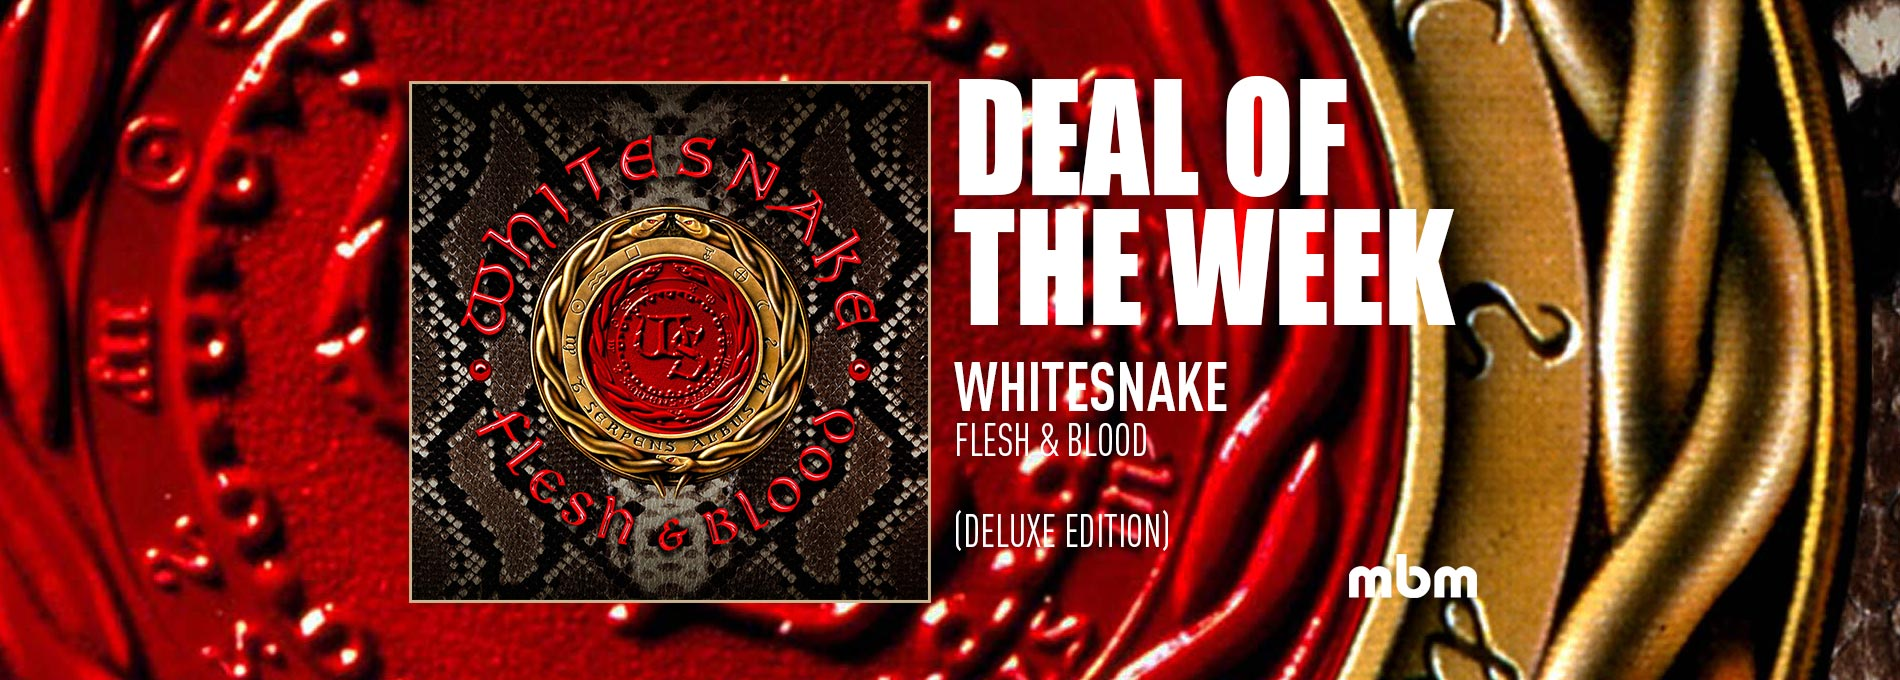 Deal Of The Week: WHITESNAKE - Flesh & Blood (Deluxe Edition)